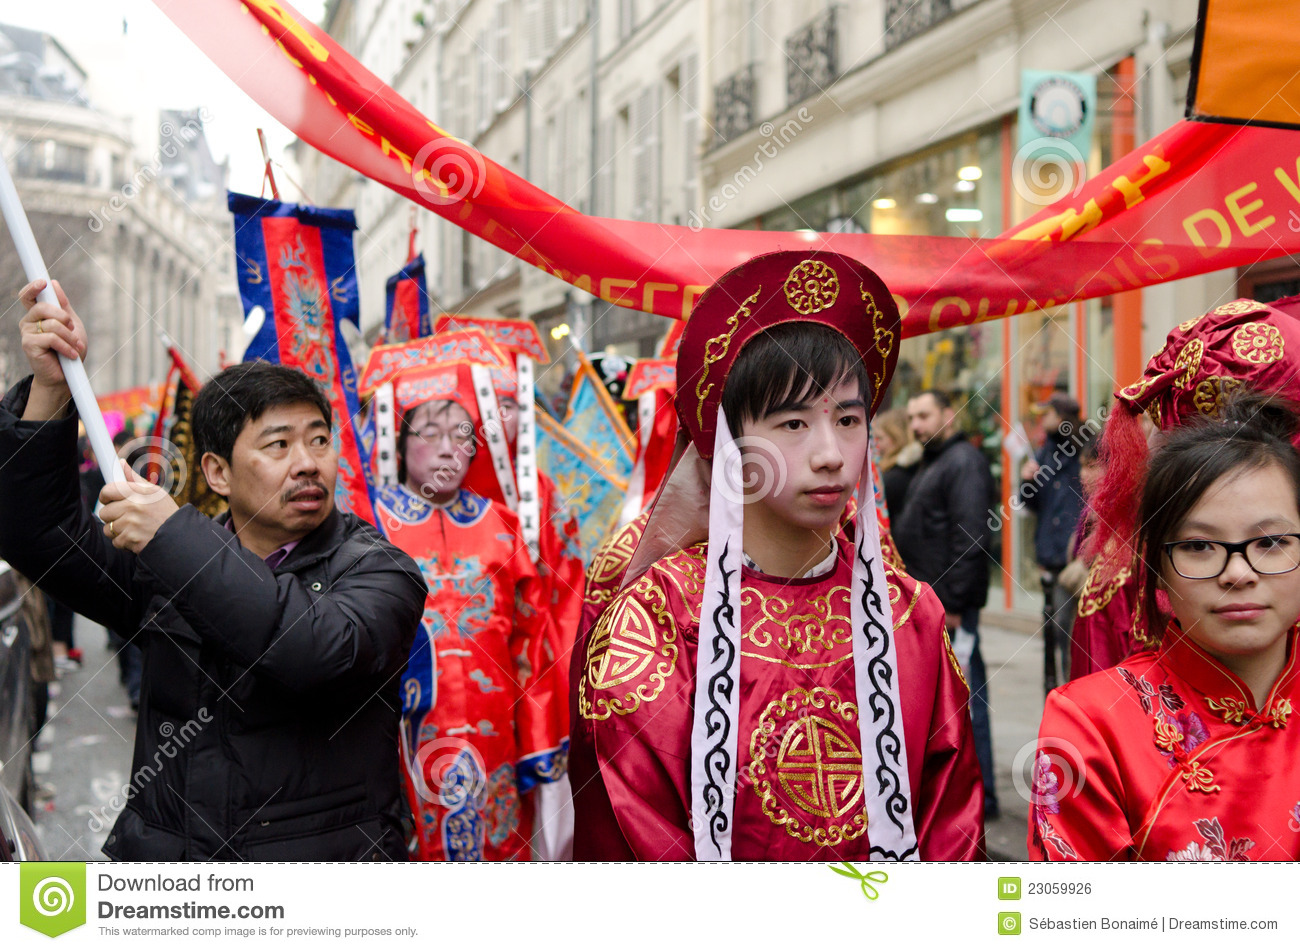 Chinese people enjoying the 2015 chinese new year in Paris, France.